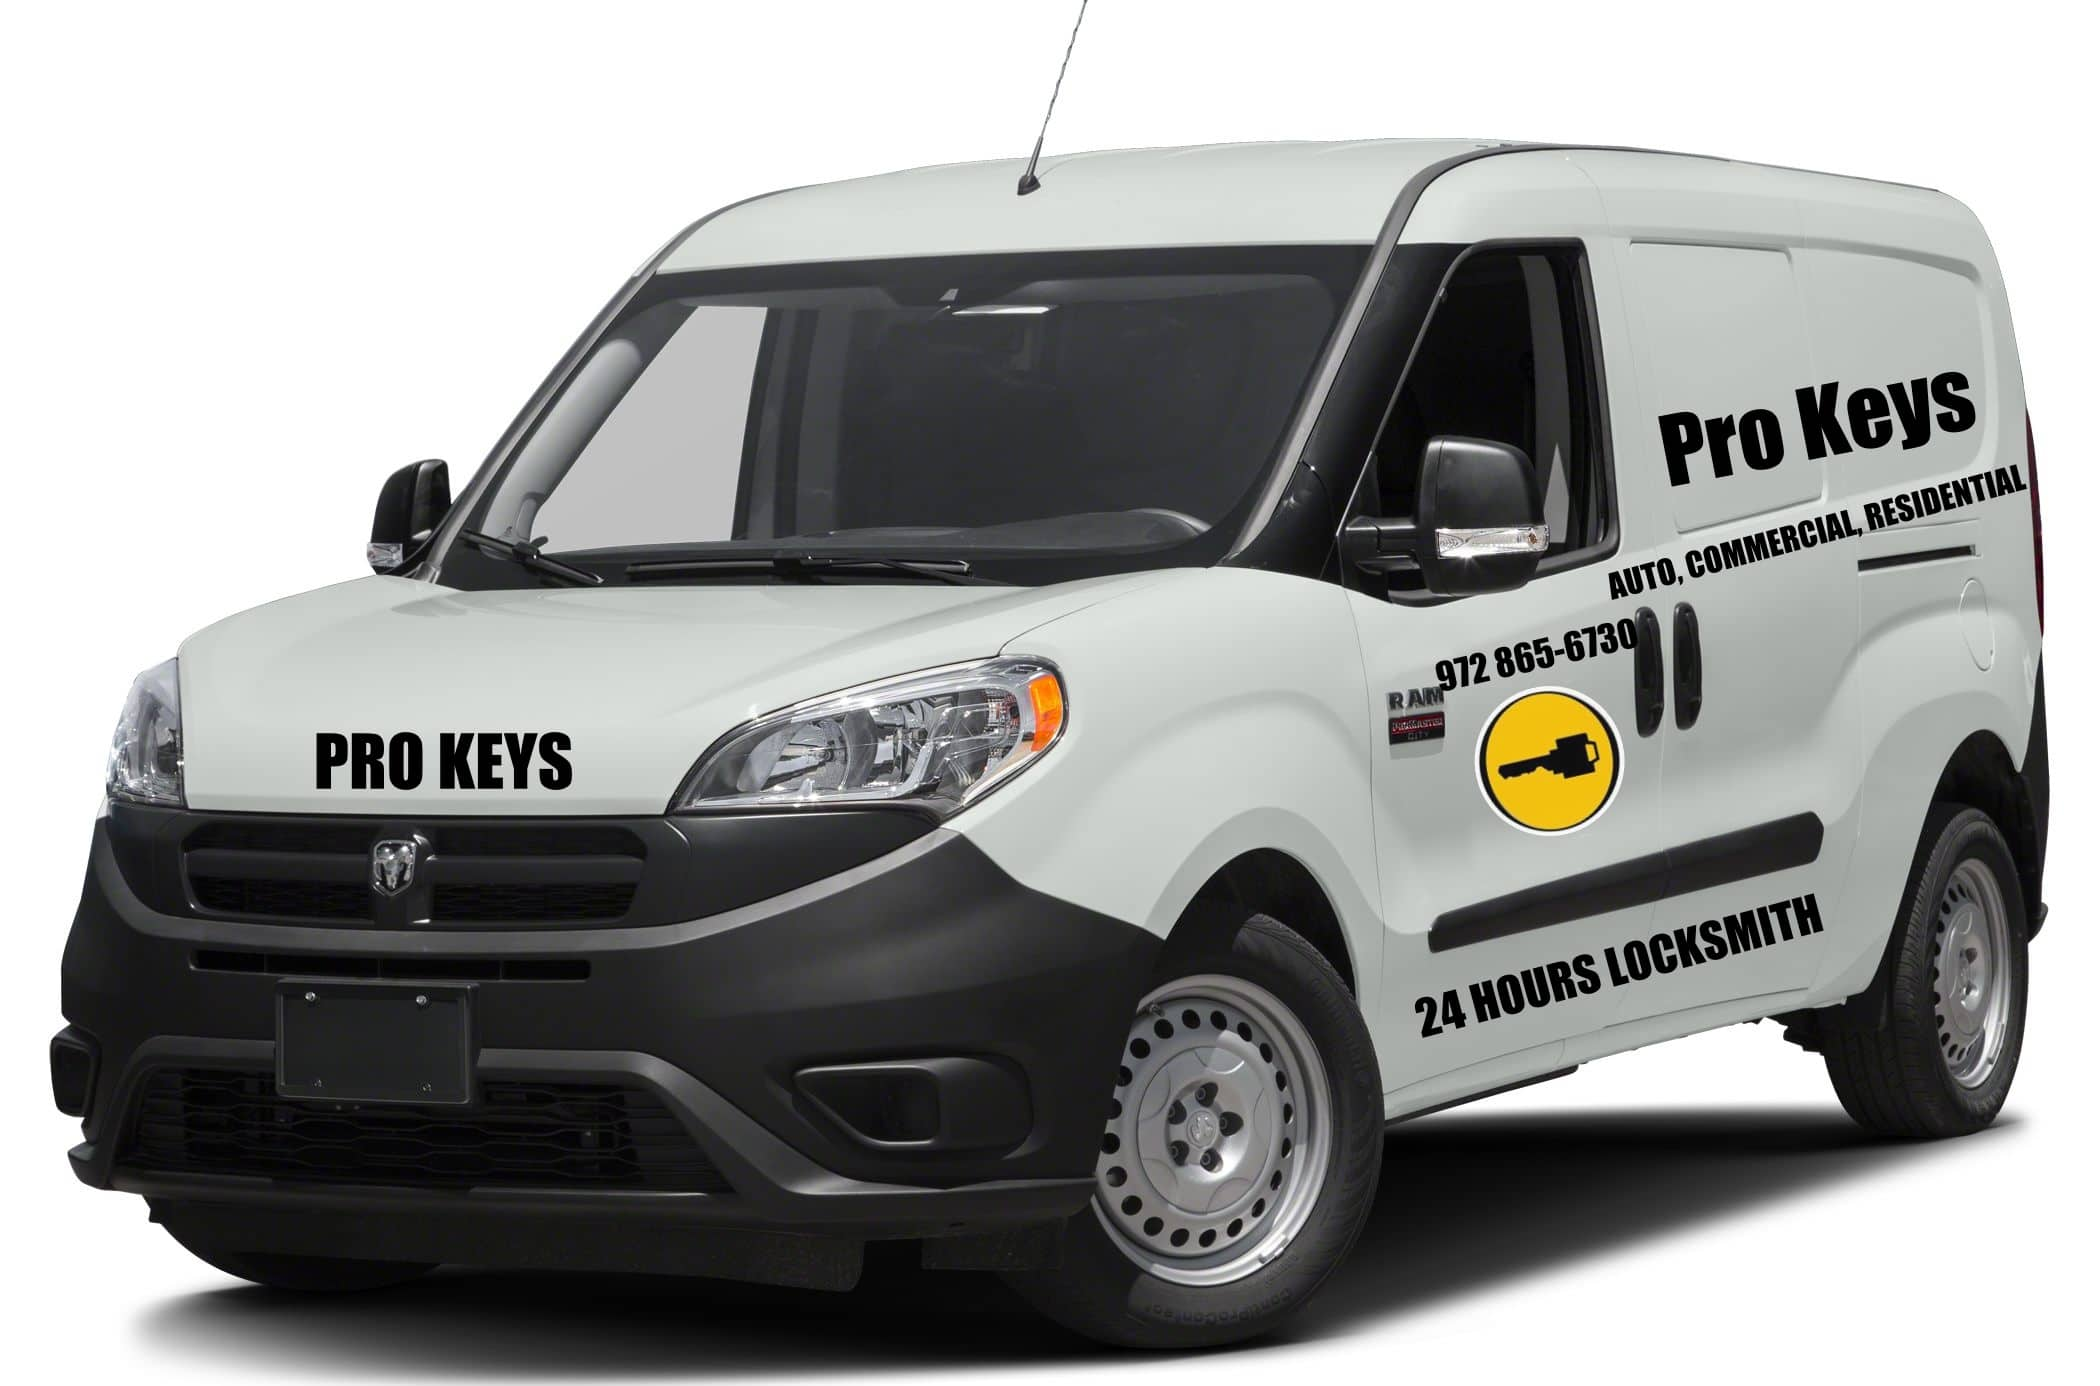 Euless Locksmith Service locksmith van